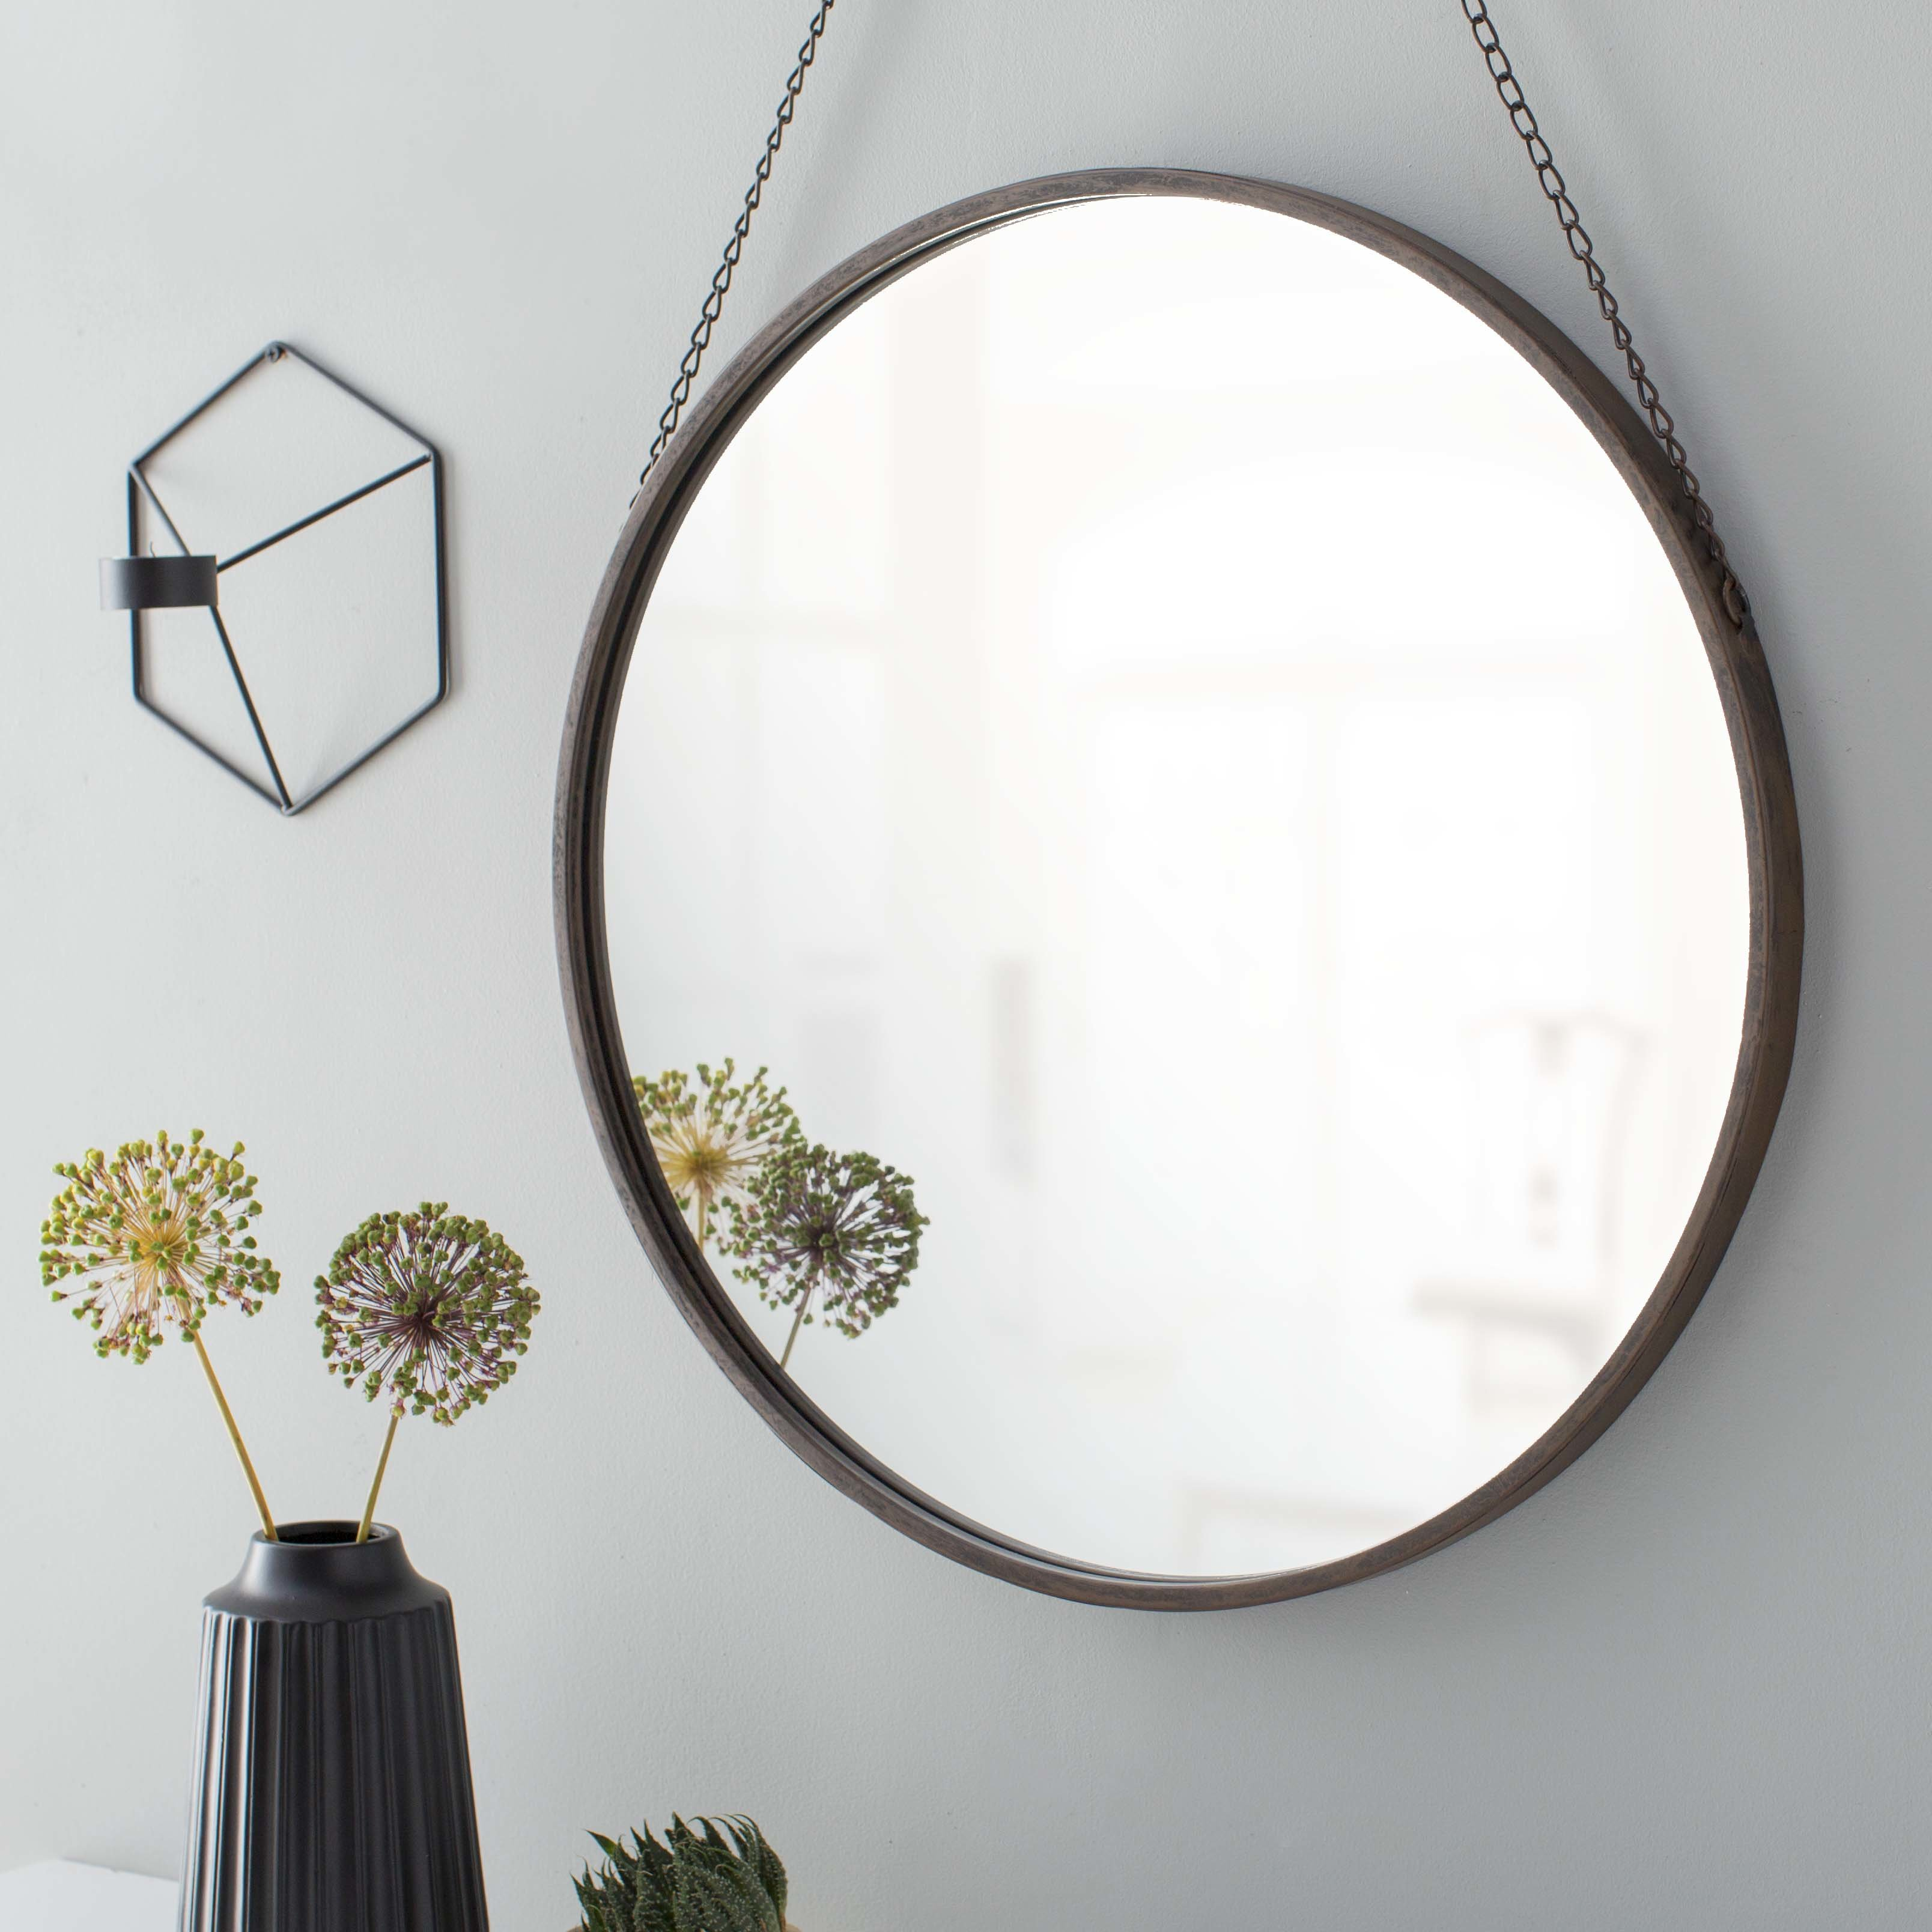 Modern Metal Round Wall Mirrors | Allmodern In Brynn Accent Mirrors (View 8 of 30)